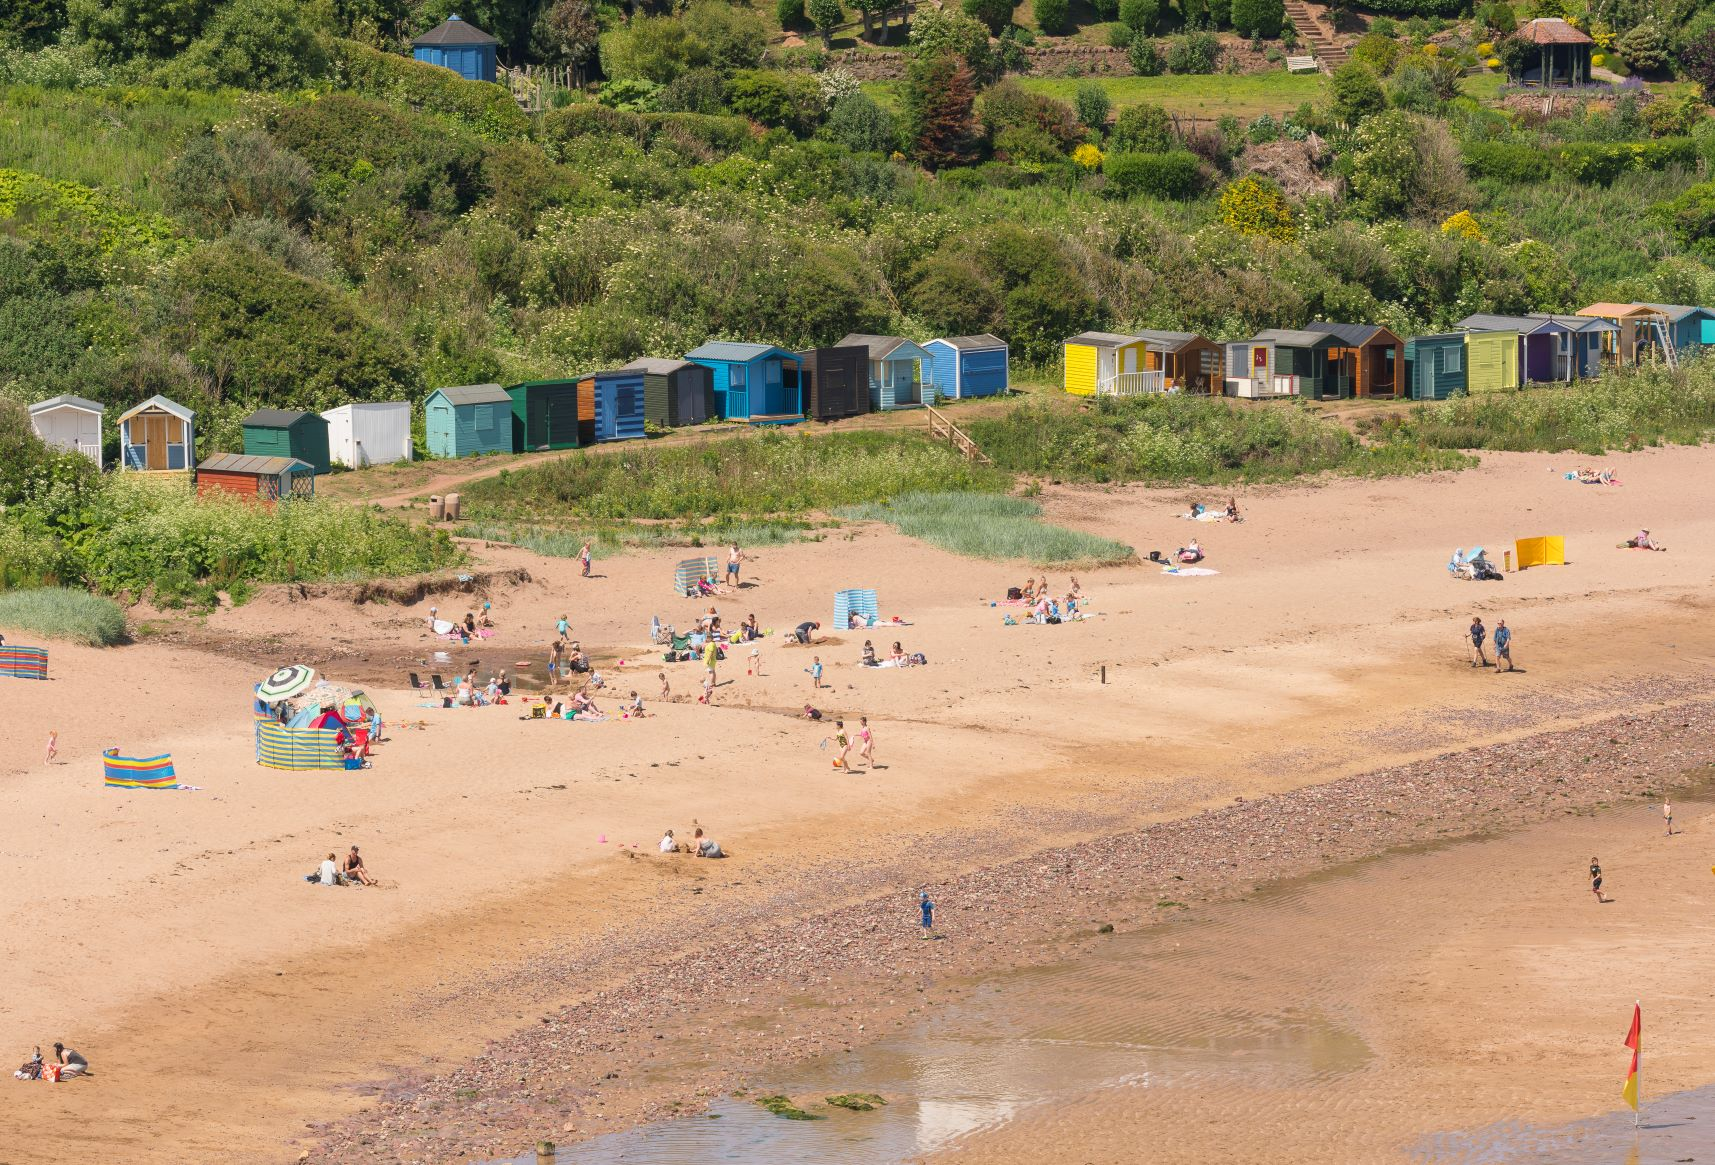 The beach at Coldingham Bay in the Scottish Borders